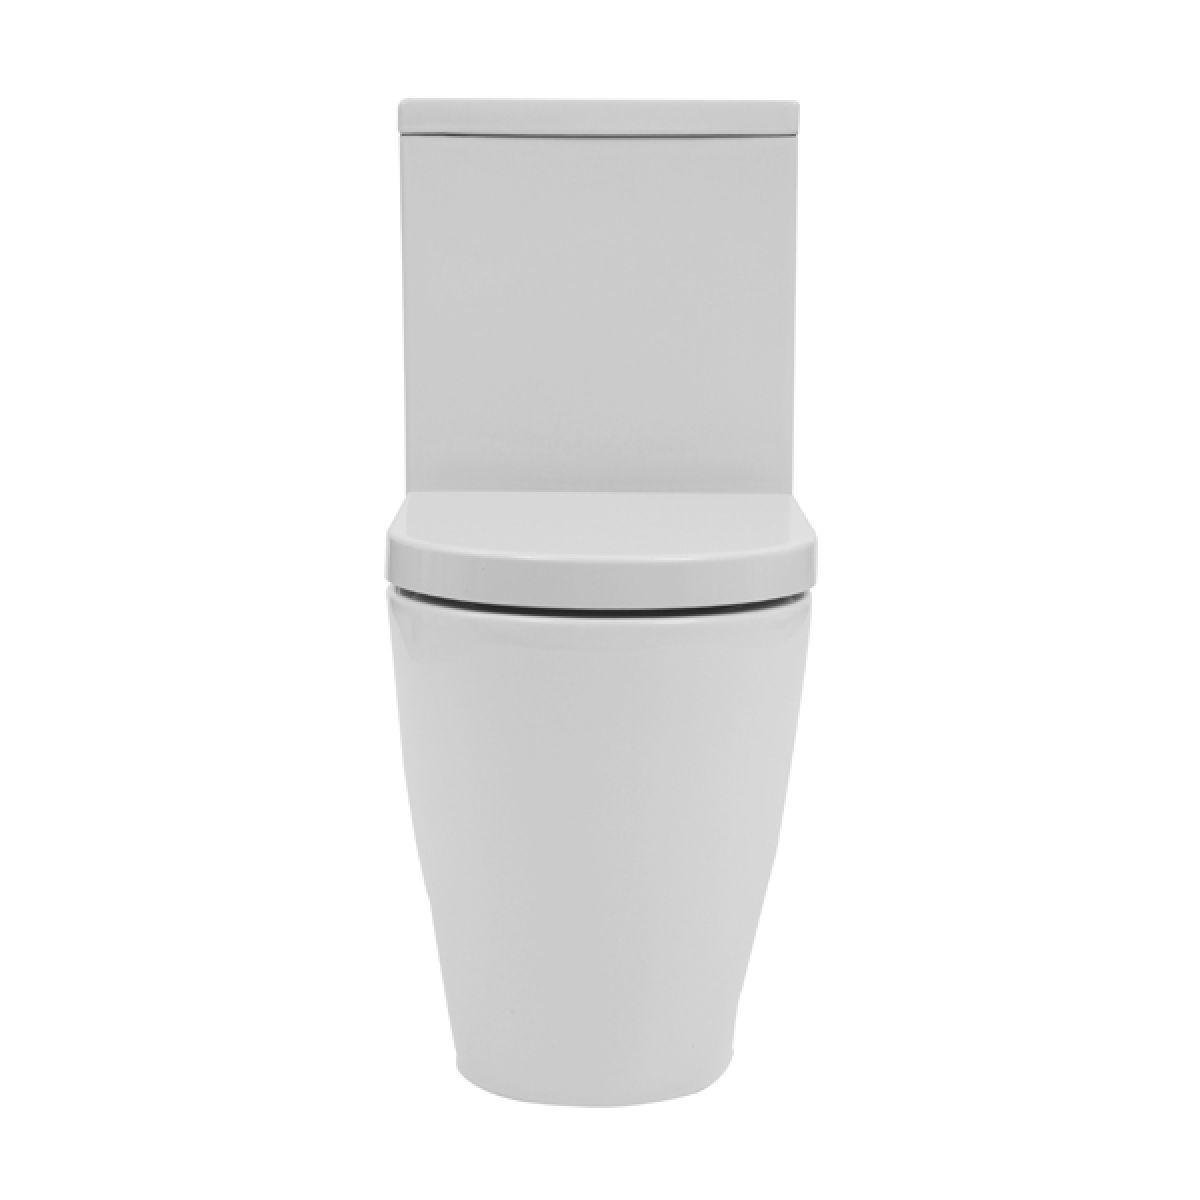 Frontline Emme Close Coupled Toilet with Soft Close Seat